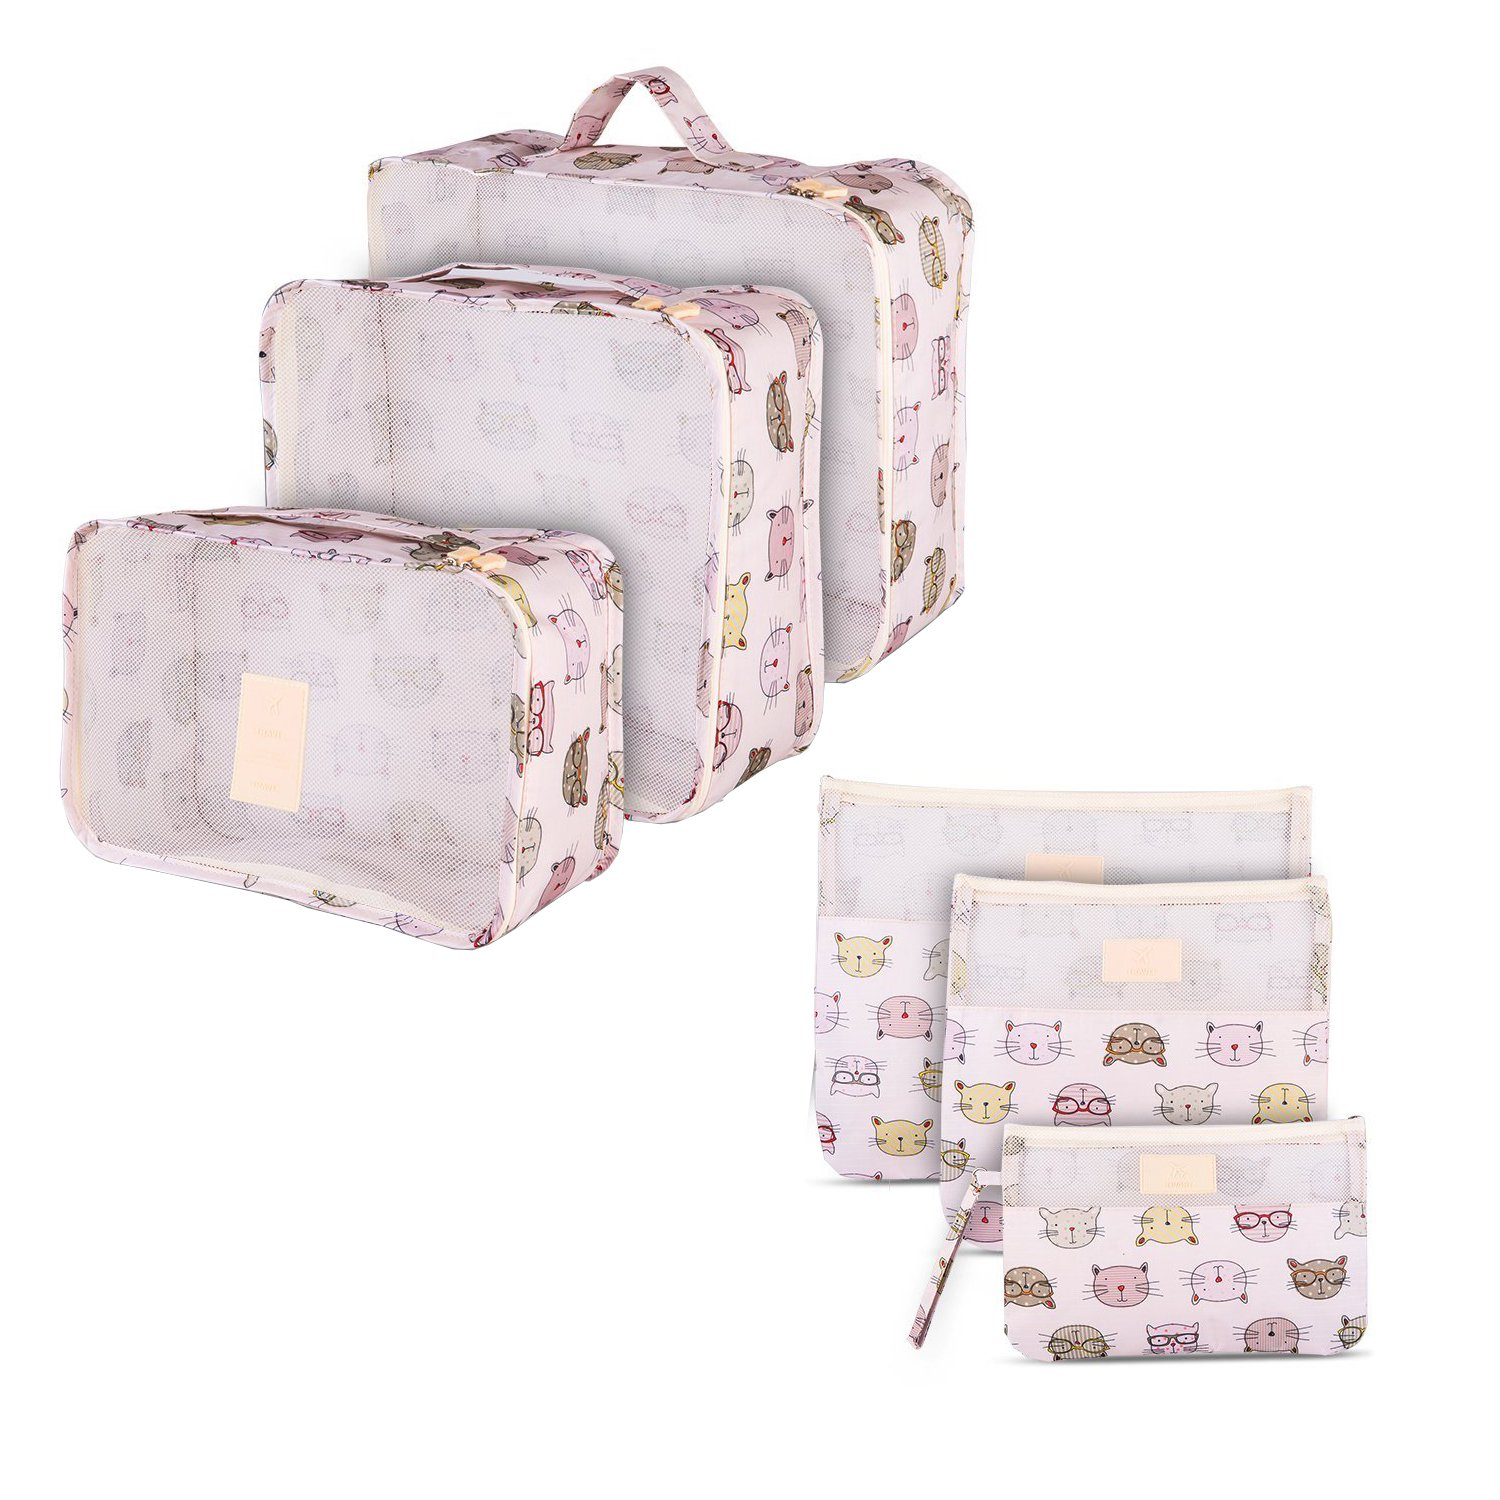 181991bf8d99 hot sale 6 Set Waterproof Mesh Travel Accessories Carryon Dirty ...